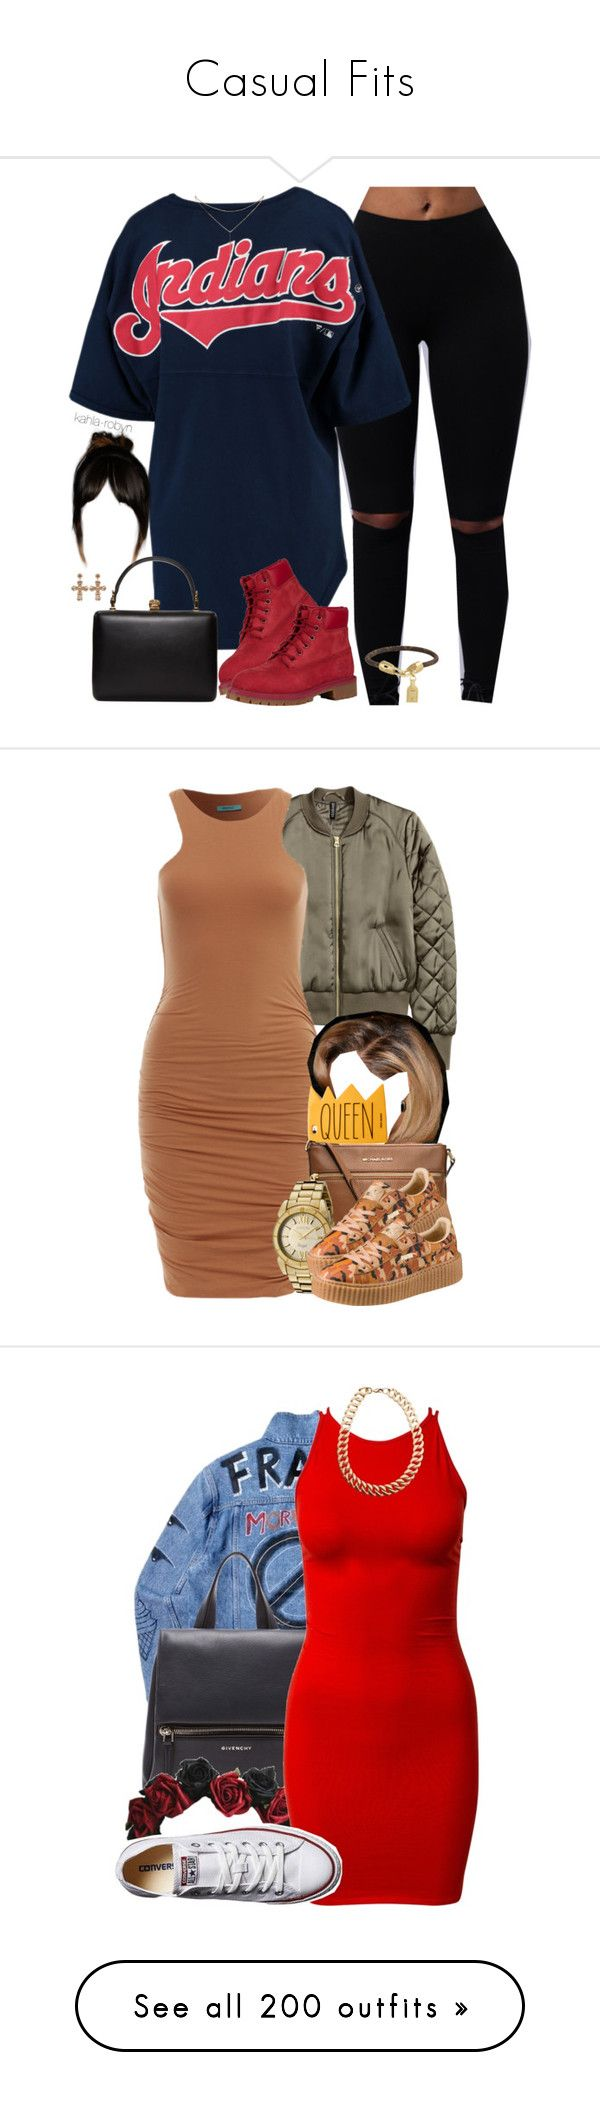 """""""Casual Fits"""" by heavensincere ❤ liked on Polyvore featuring Timberland, Alexander McQueen, Louis Vuitton, GUESS by Marciano, MICHAEL Michael Kors, Invicta, Puma, Givenchy, Converse and Motel"""